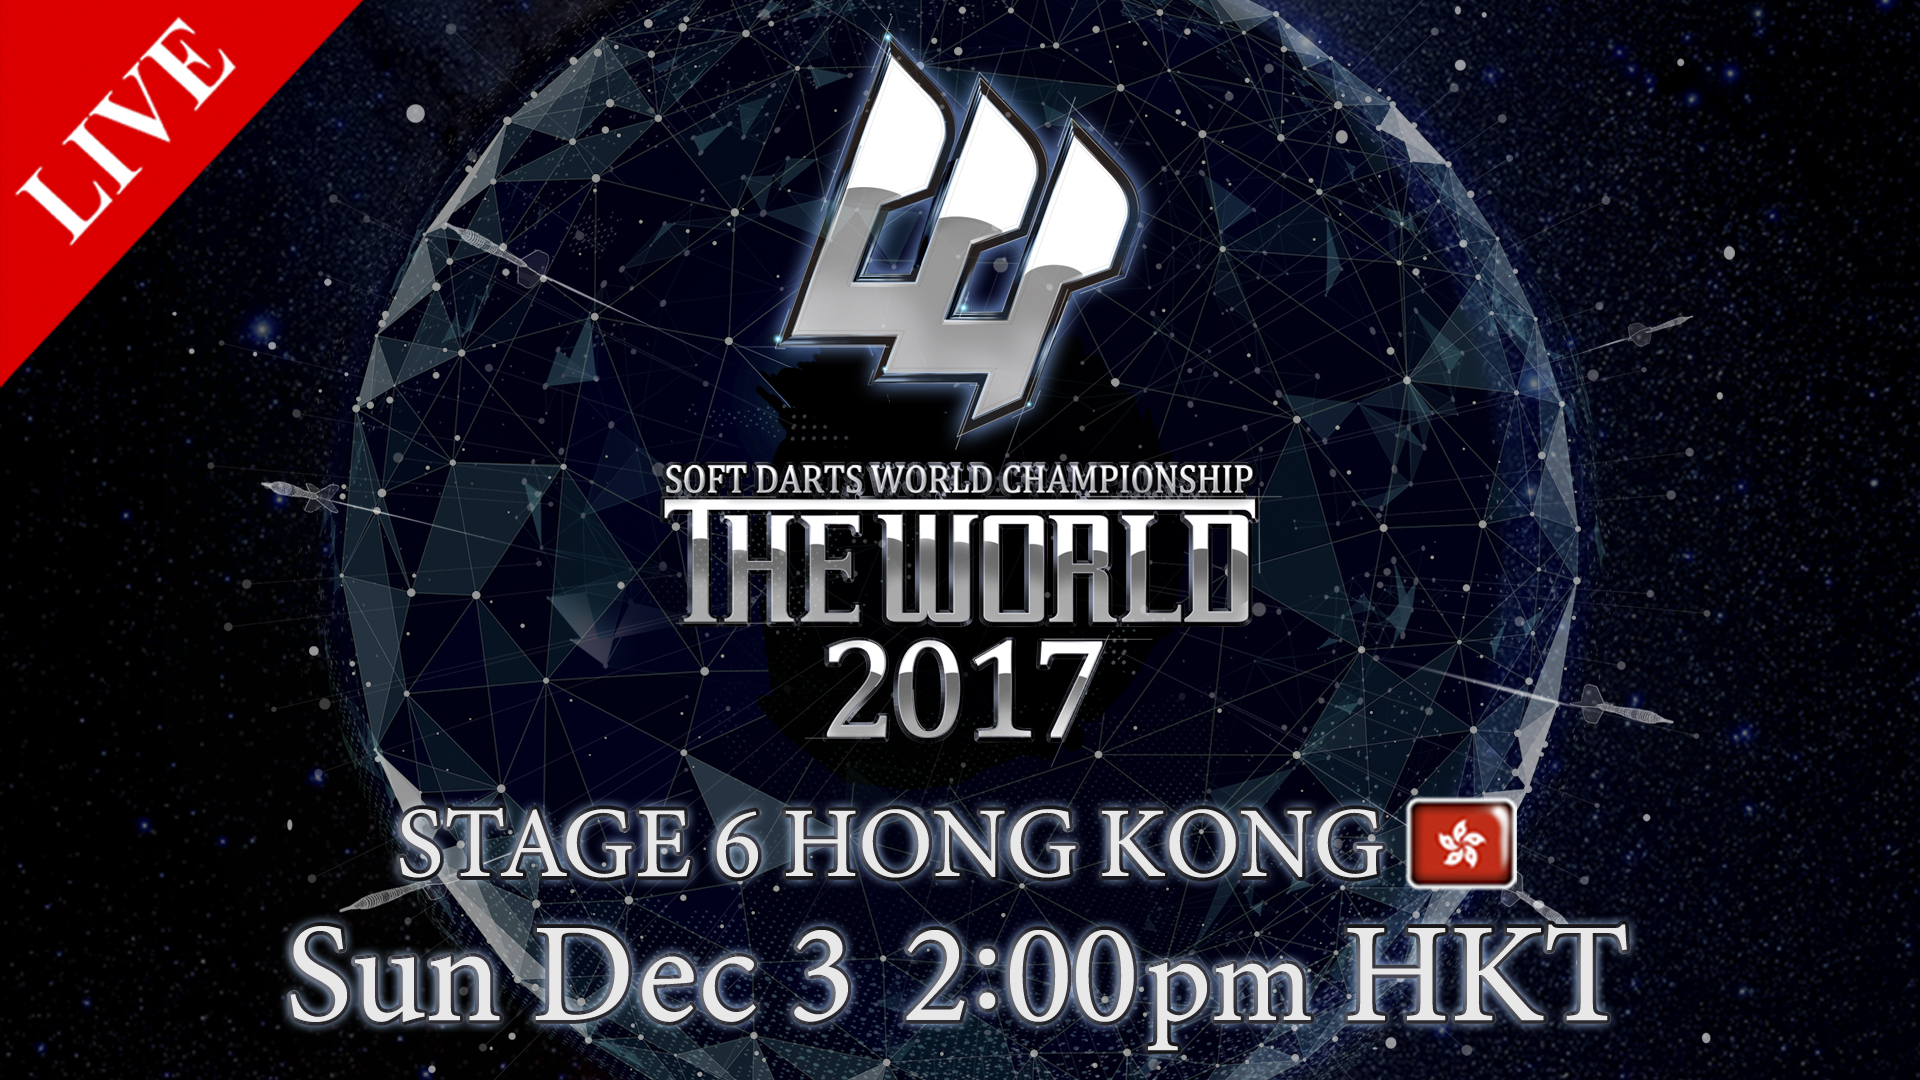 THE WORLD STAGE 6 HONG KONG Sun December 3